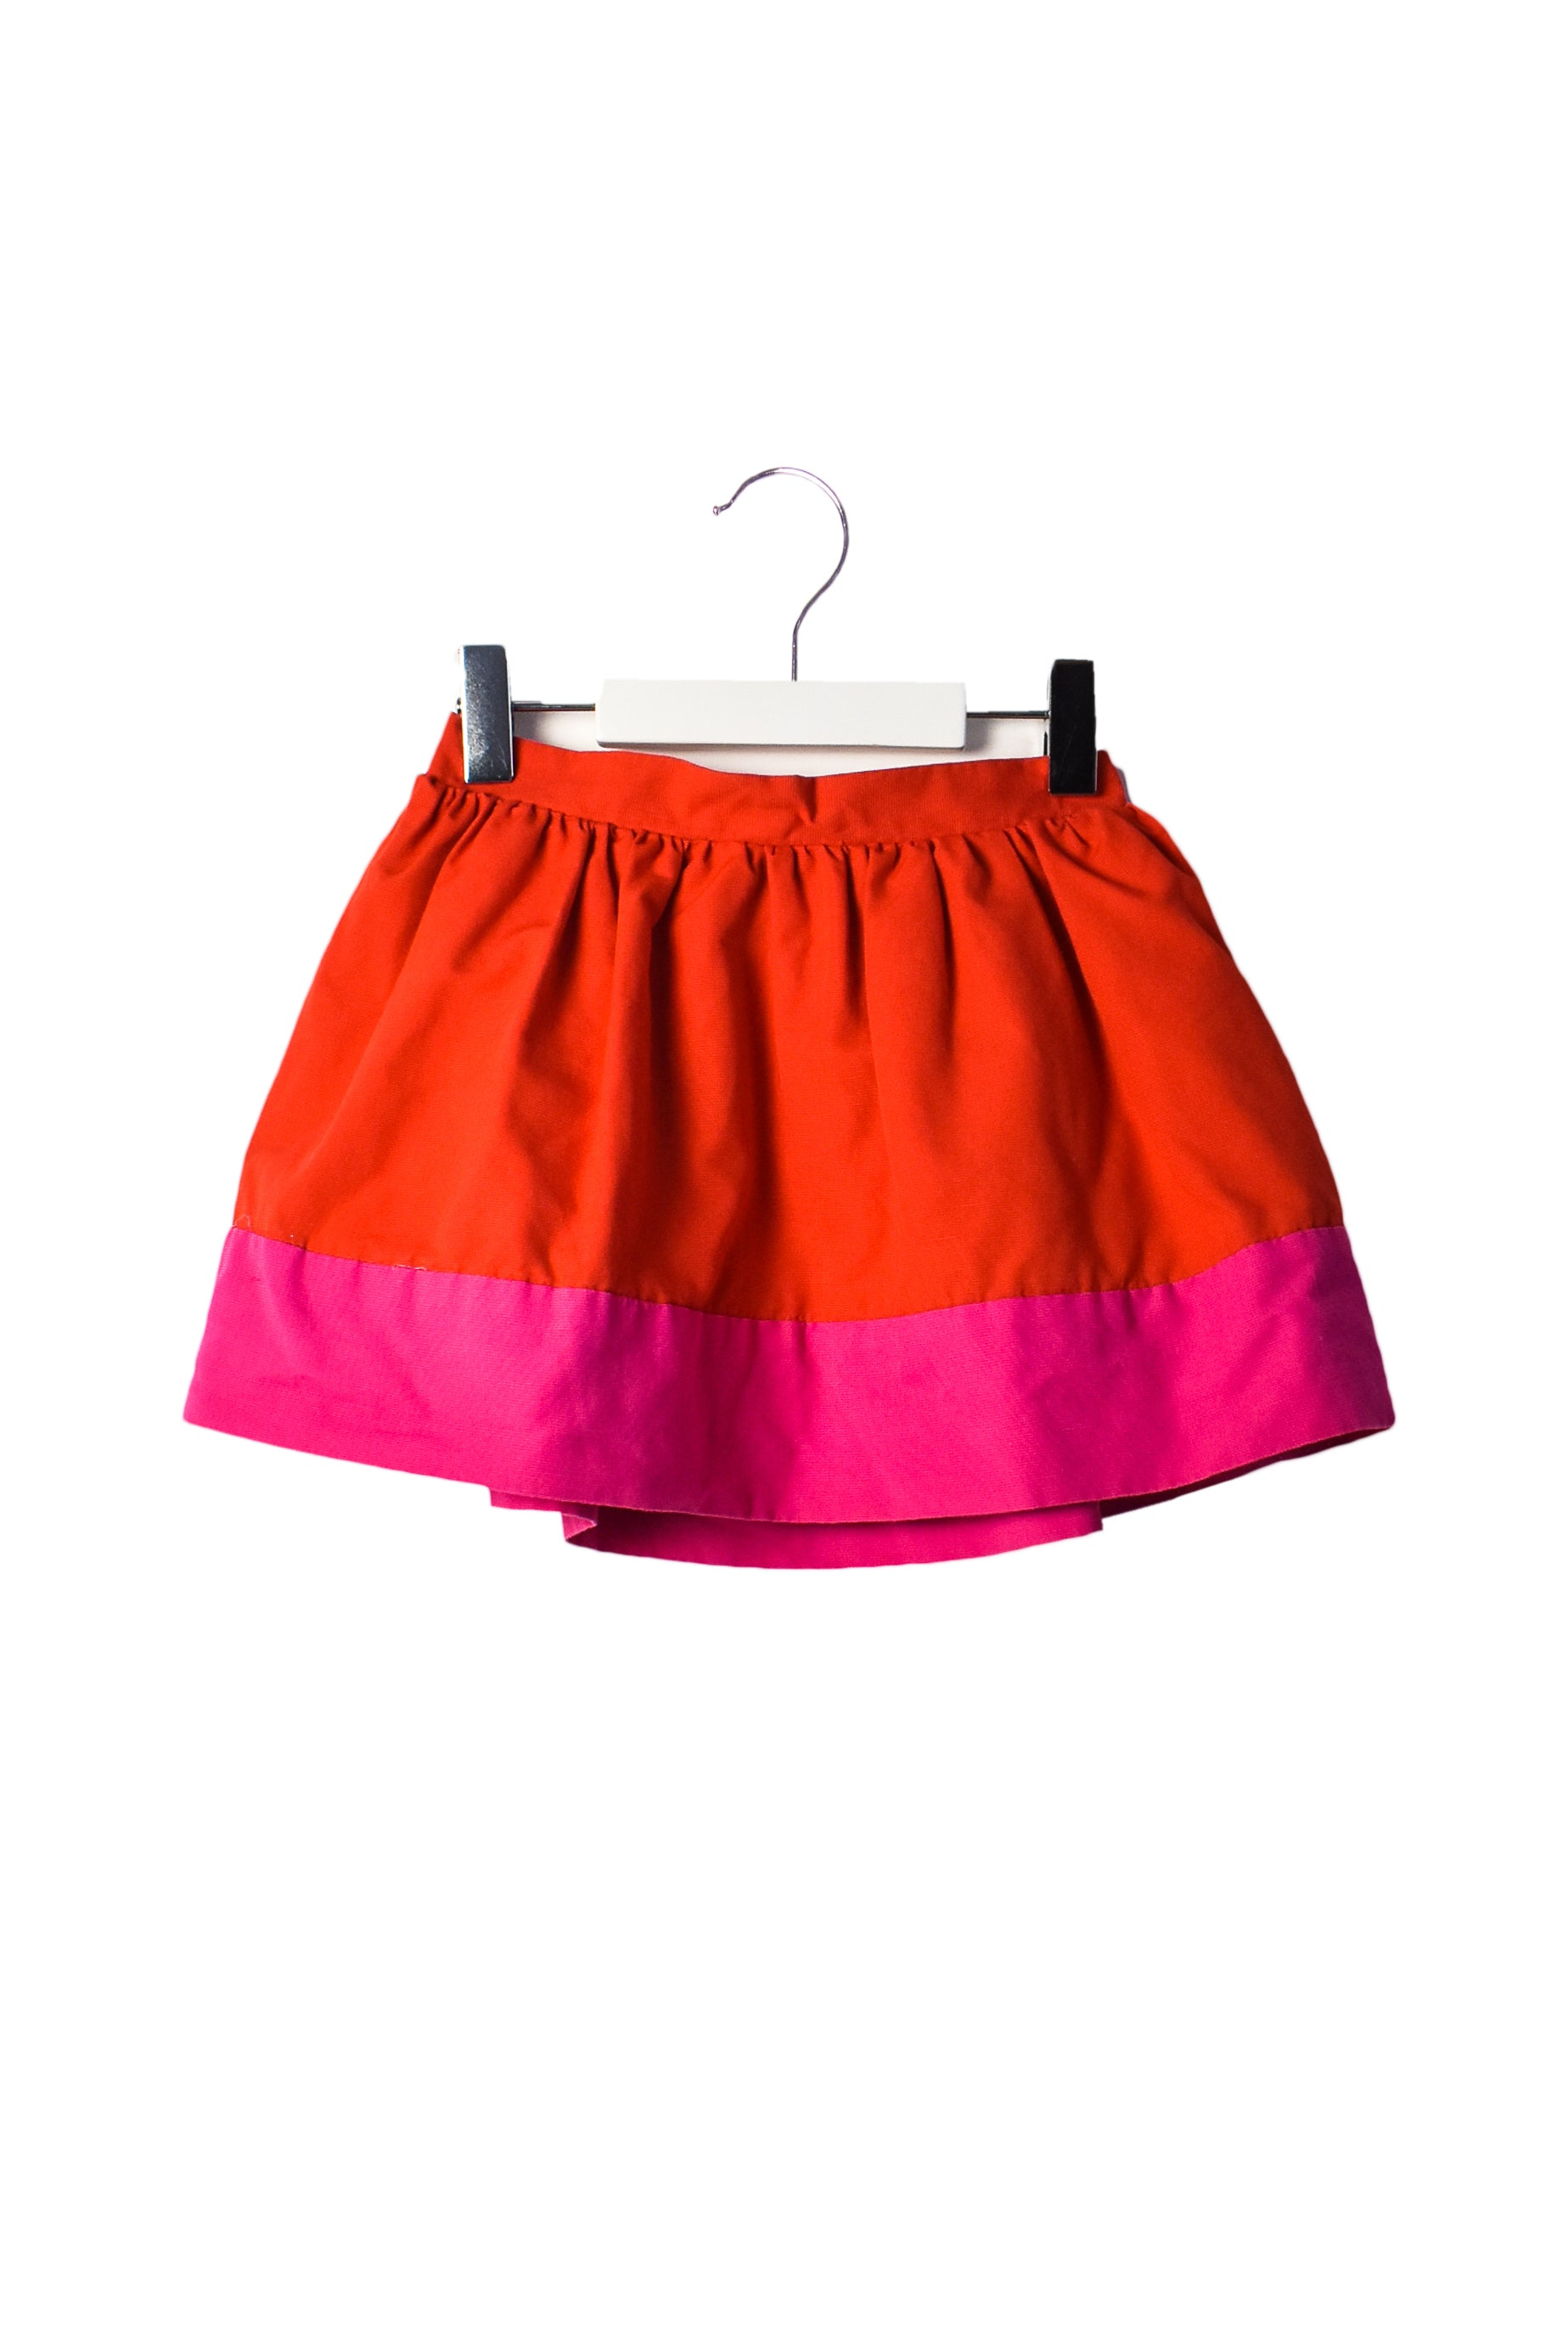 Kate Spade Gap Kids at up to off at Retykle